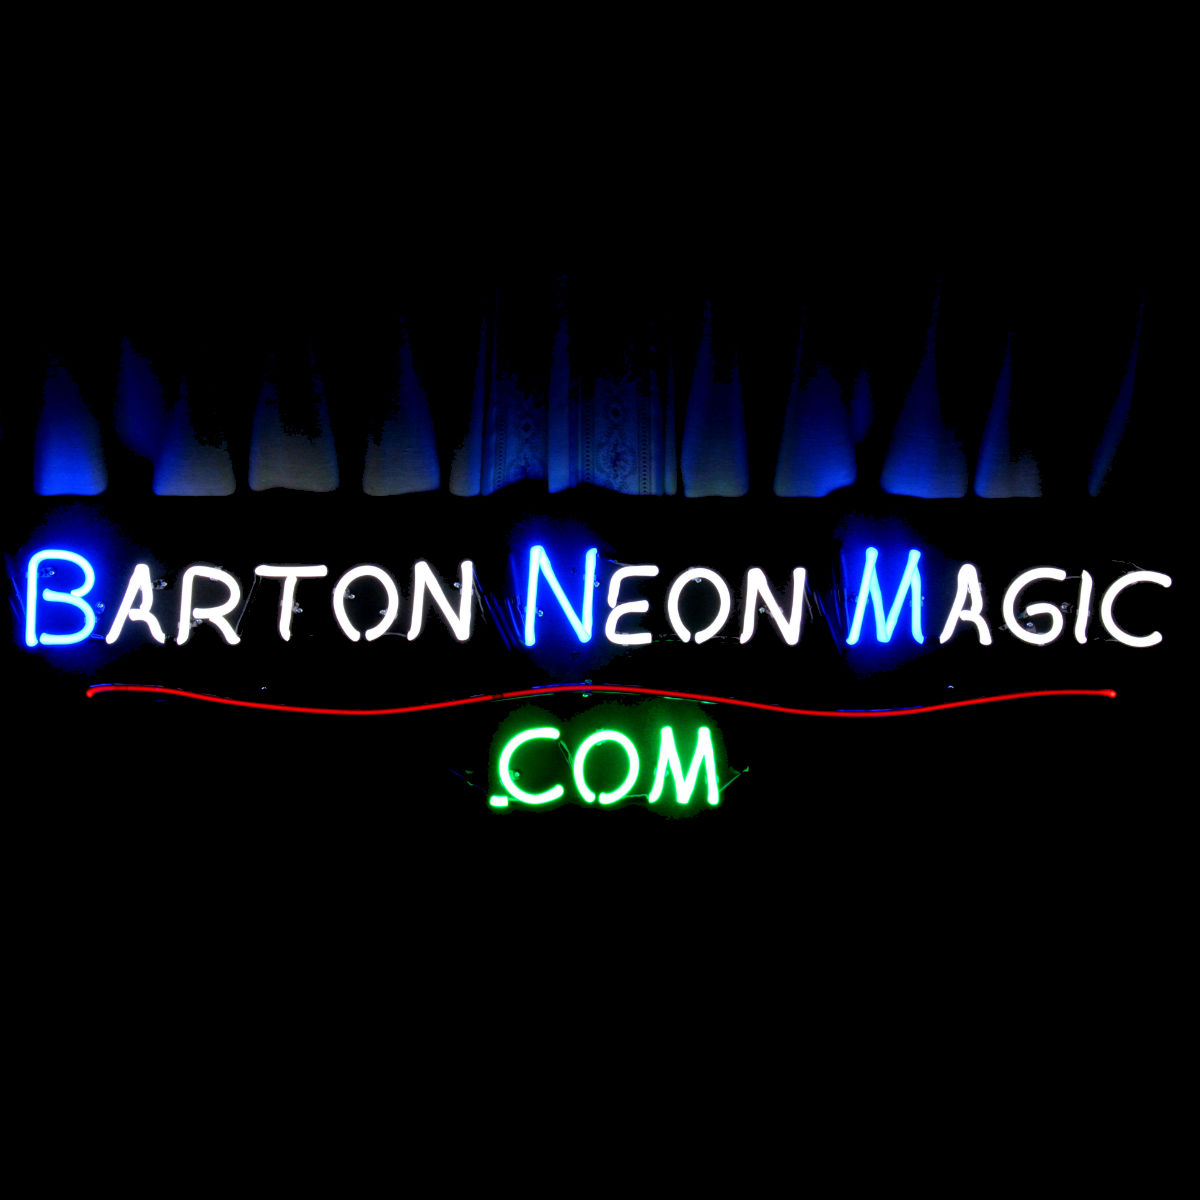 Scottie Dog Neon Light Sculptures by John Barton - BartonNeonMagic.com